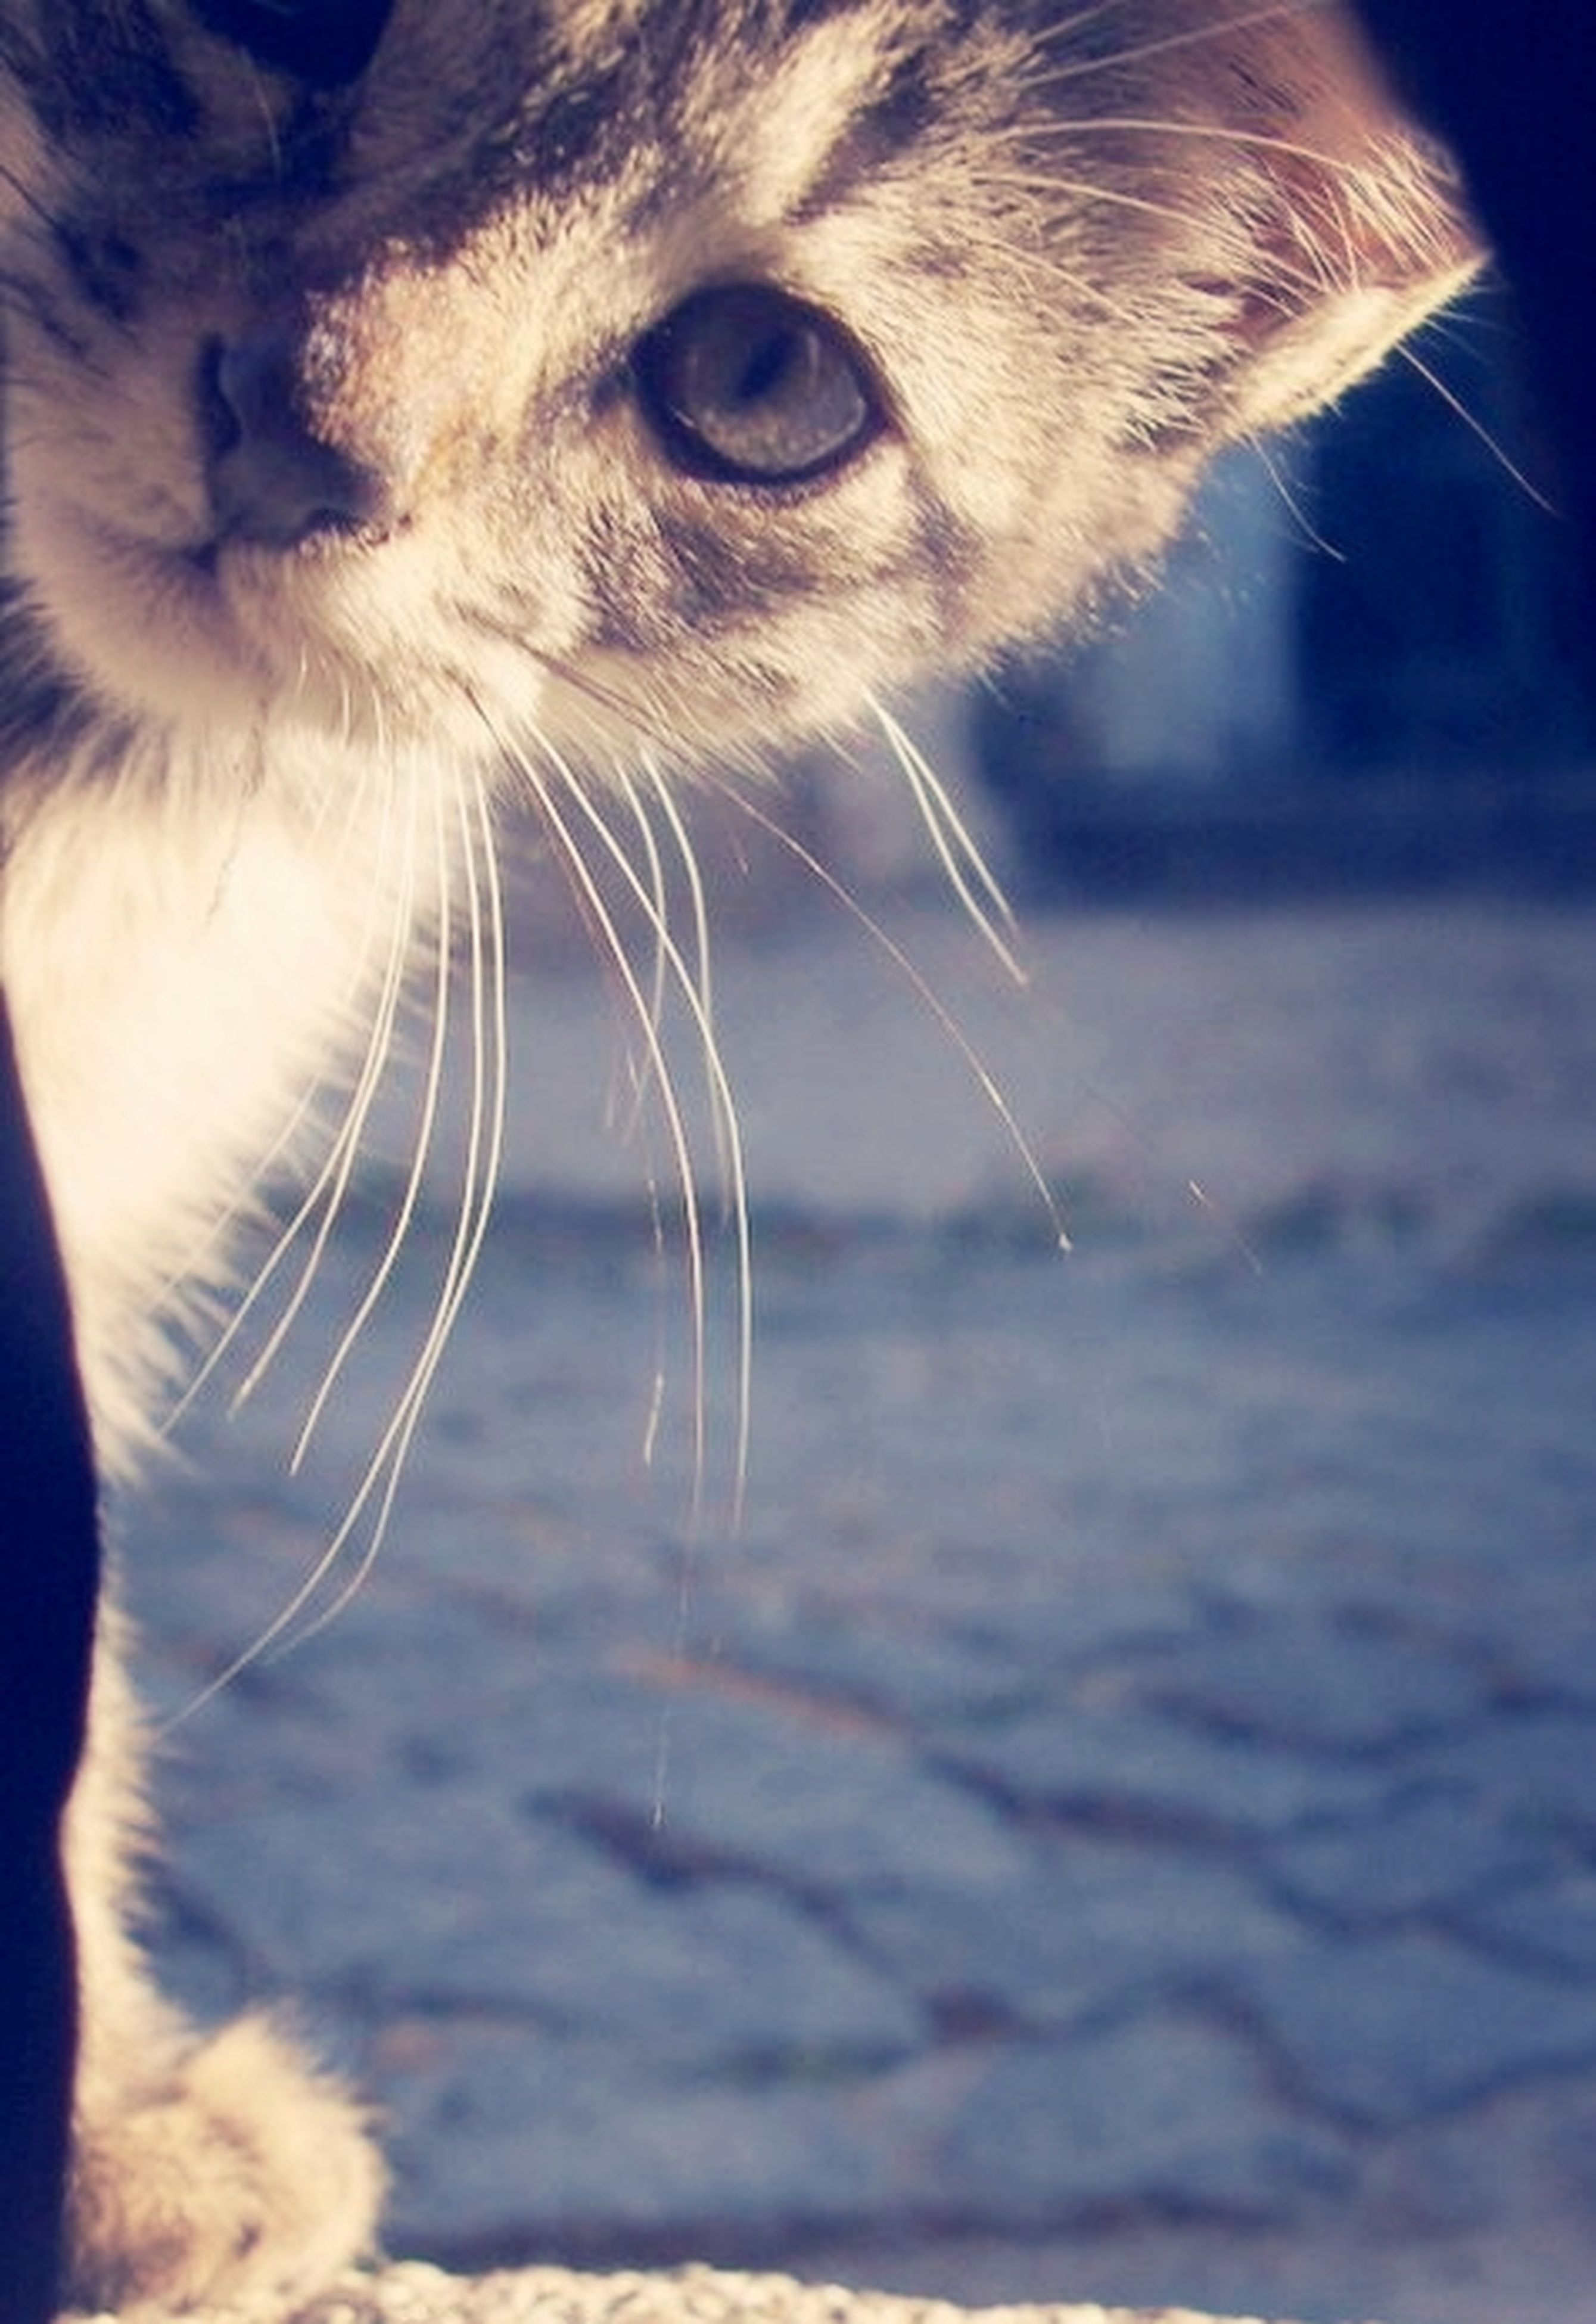 one animal, animal themes, mammal, pets, domestic animals, animal head, close-up, animal body part, animal eye, focus on foreground, wildlife, domestic cat, selective focus, whisker, zoology, part of, nature, cat, no people, animal hair